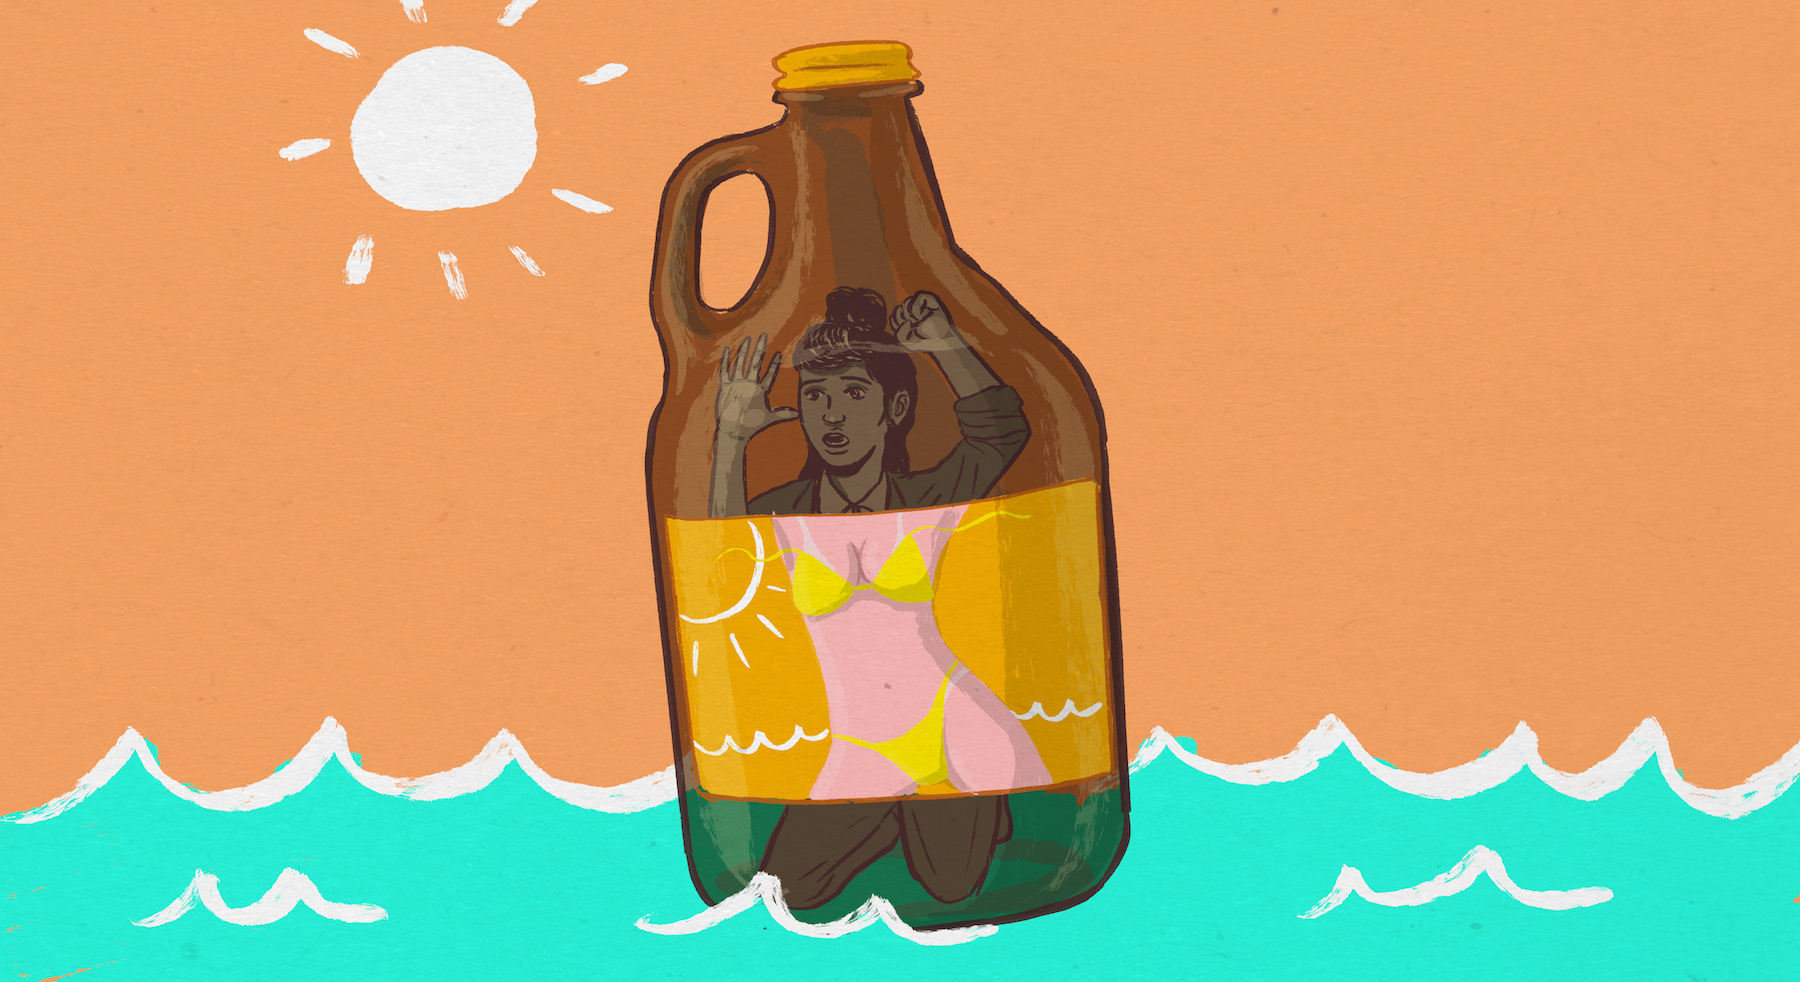 Brewing Change: Inside the Beer Industry's Fight for Equality